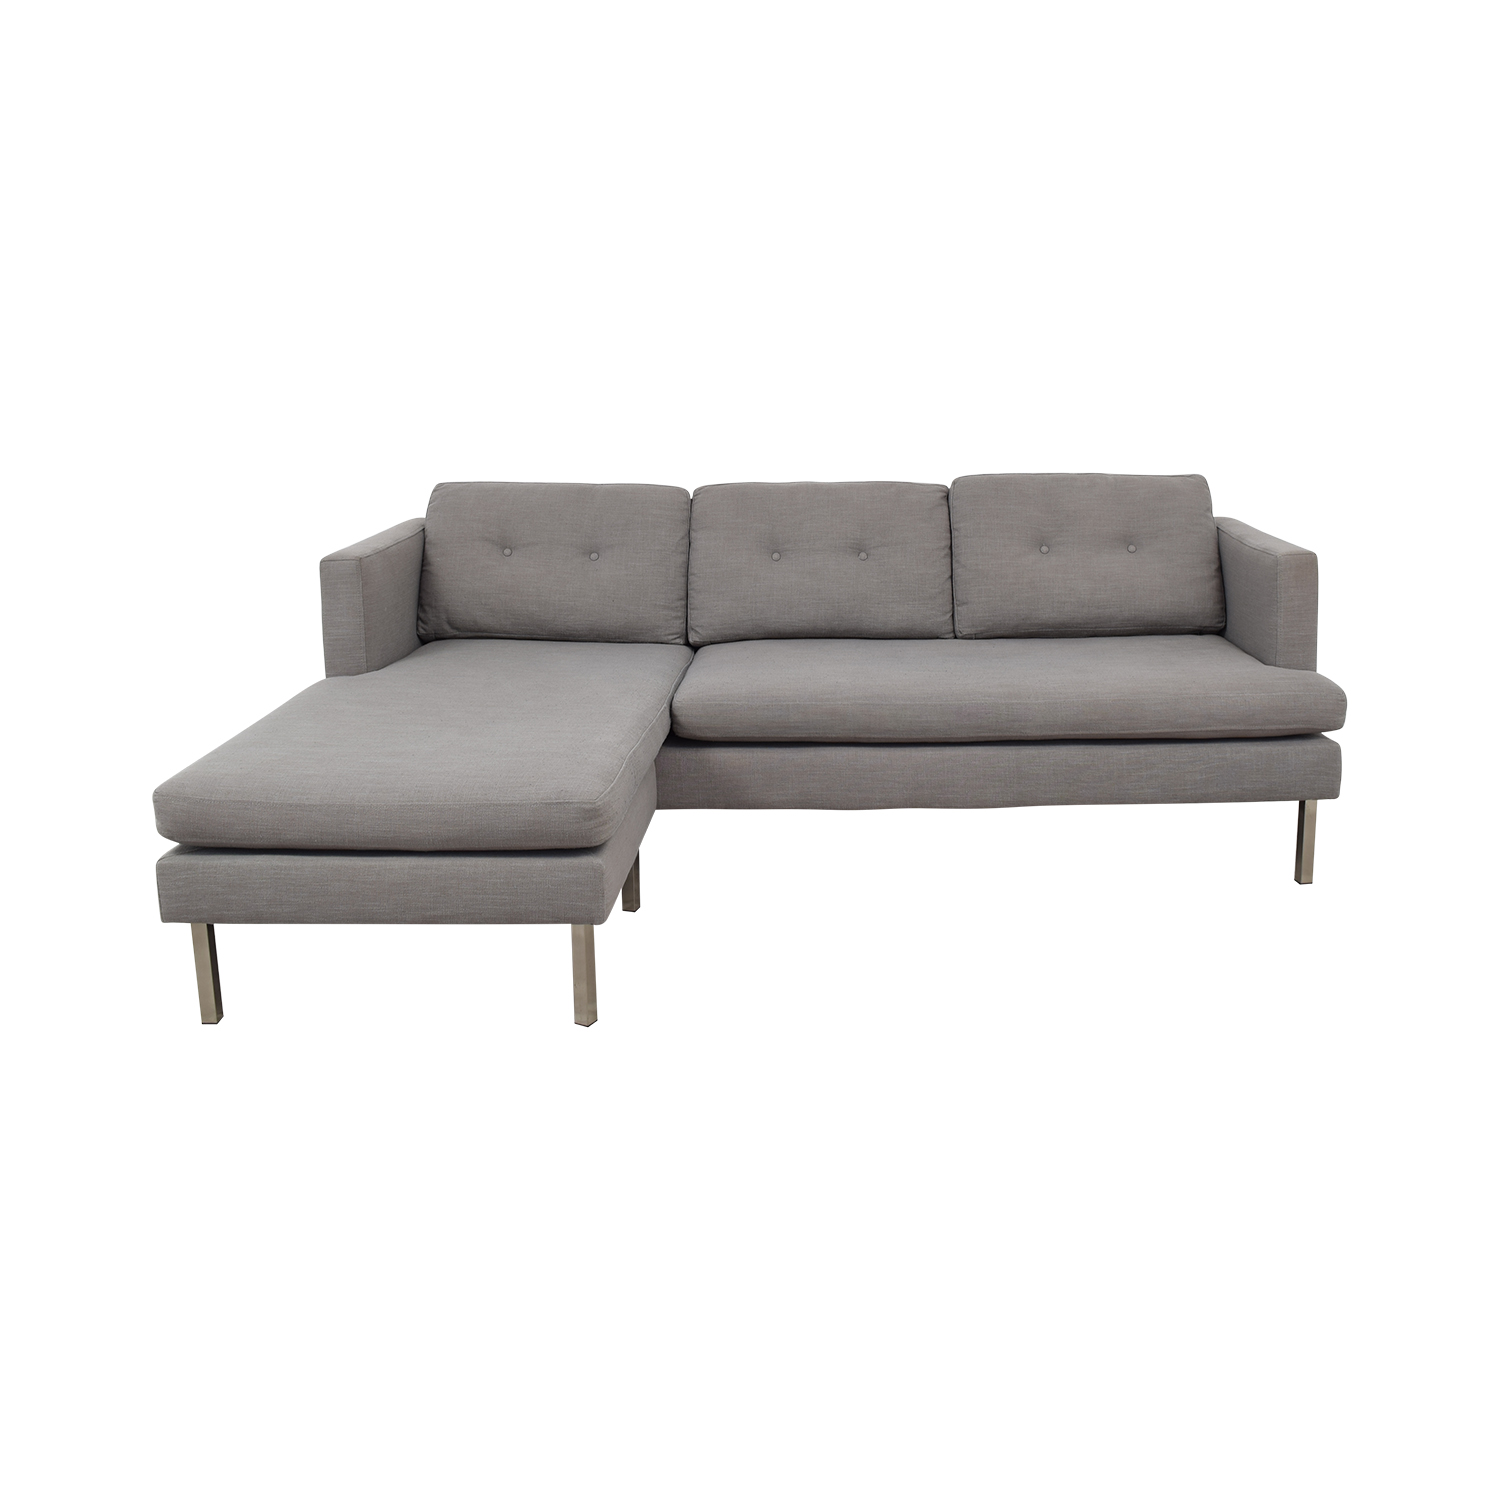 West Elm West Elm Jackson Grey Chaise Sectional price